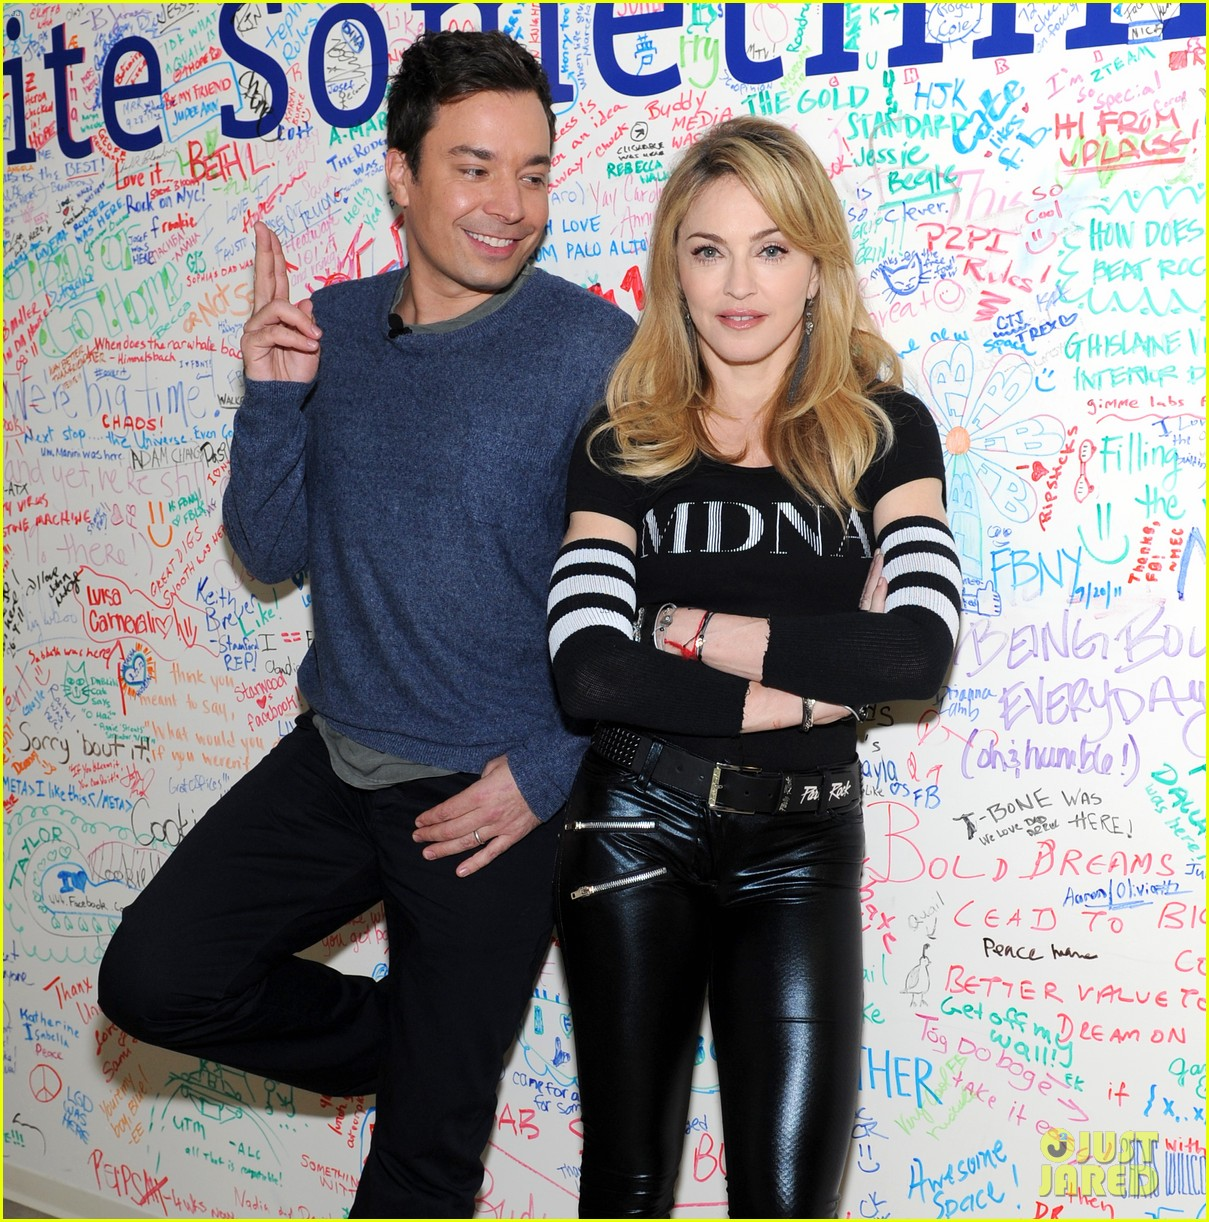 madonna facebook live chat with jimmy fallon 01